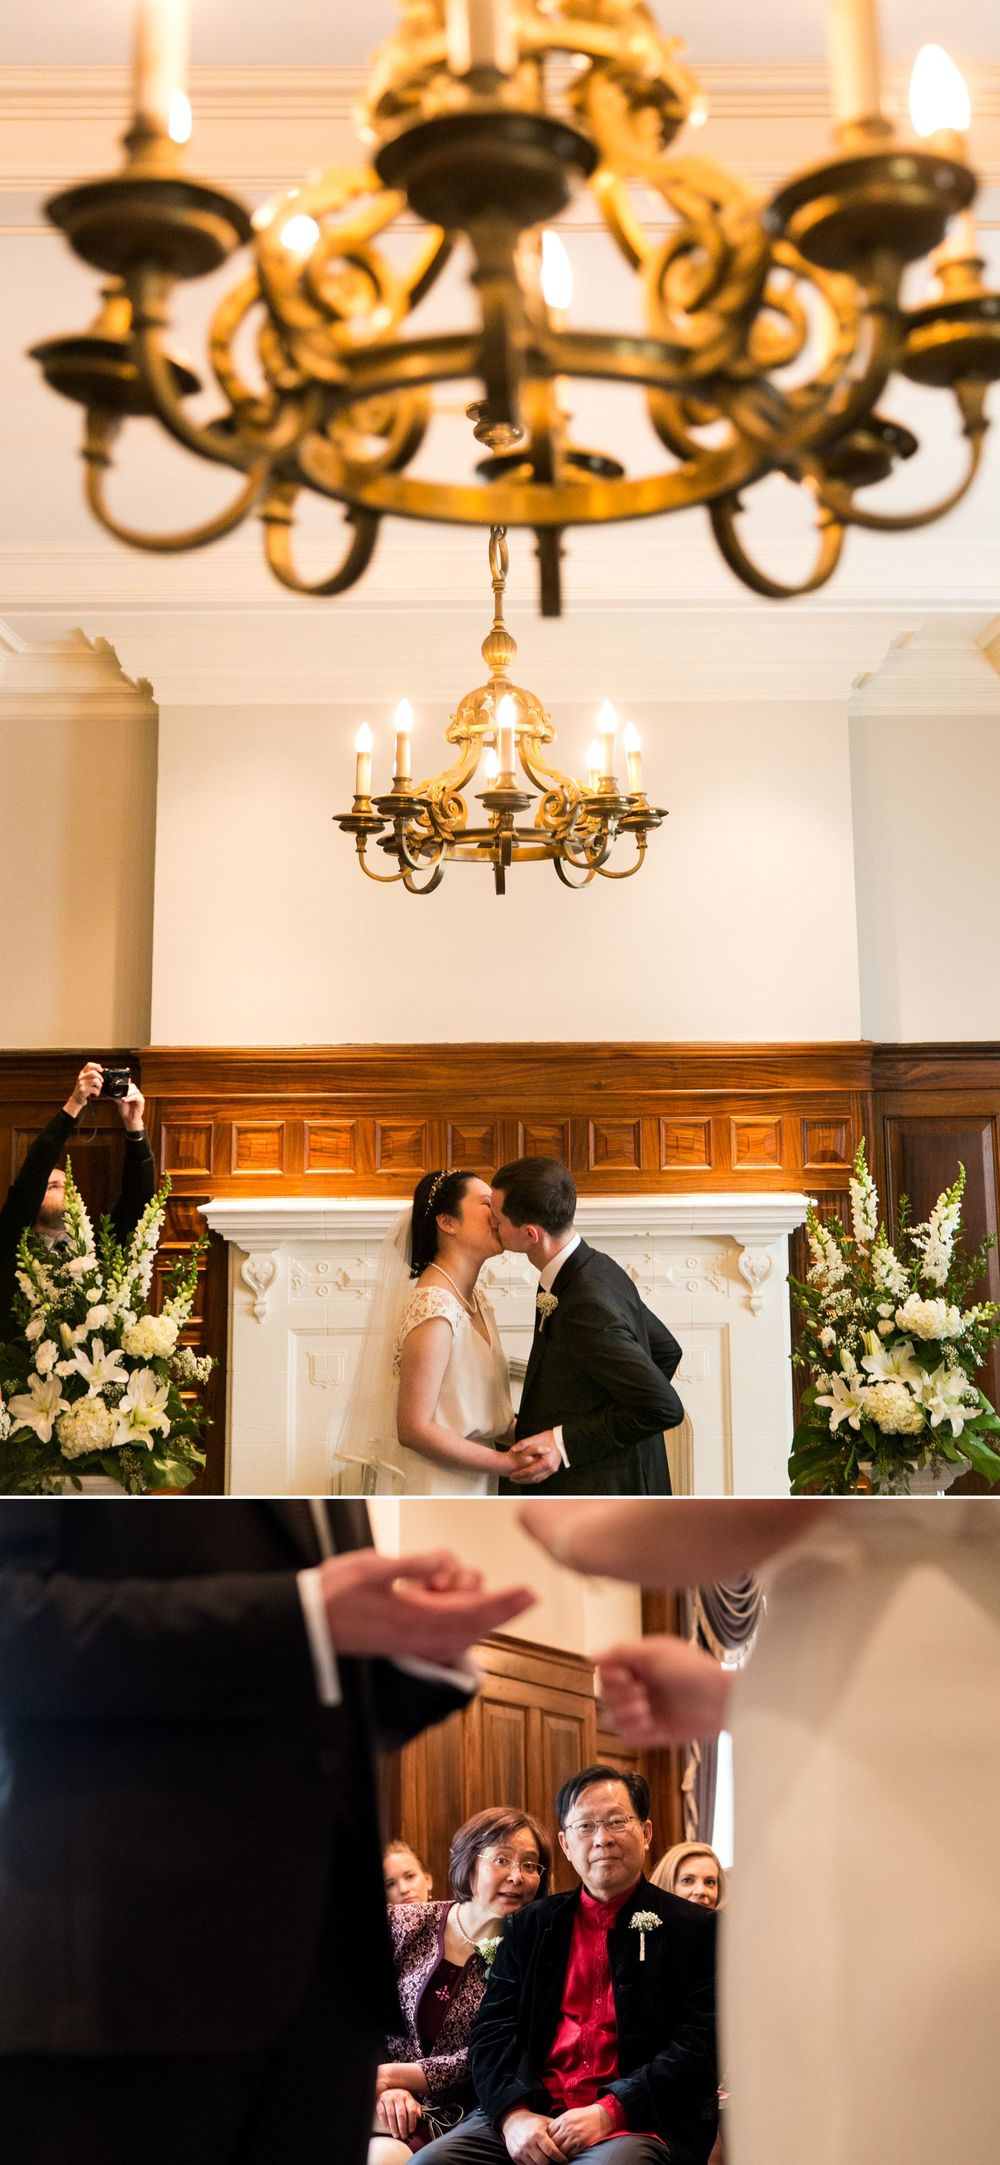 The bride and groom during their first kiss at their ceremony at the Chateau Laurier